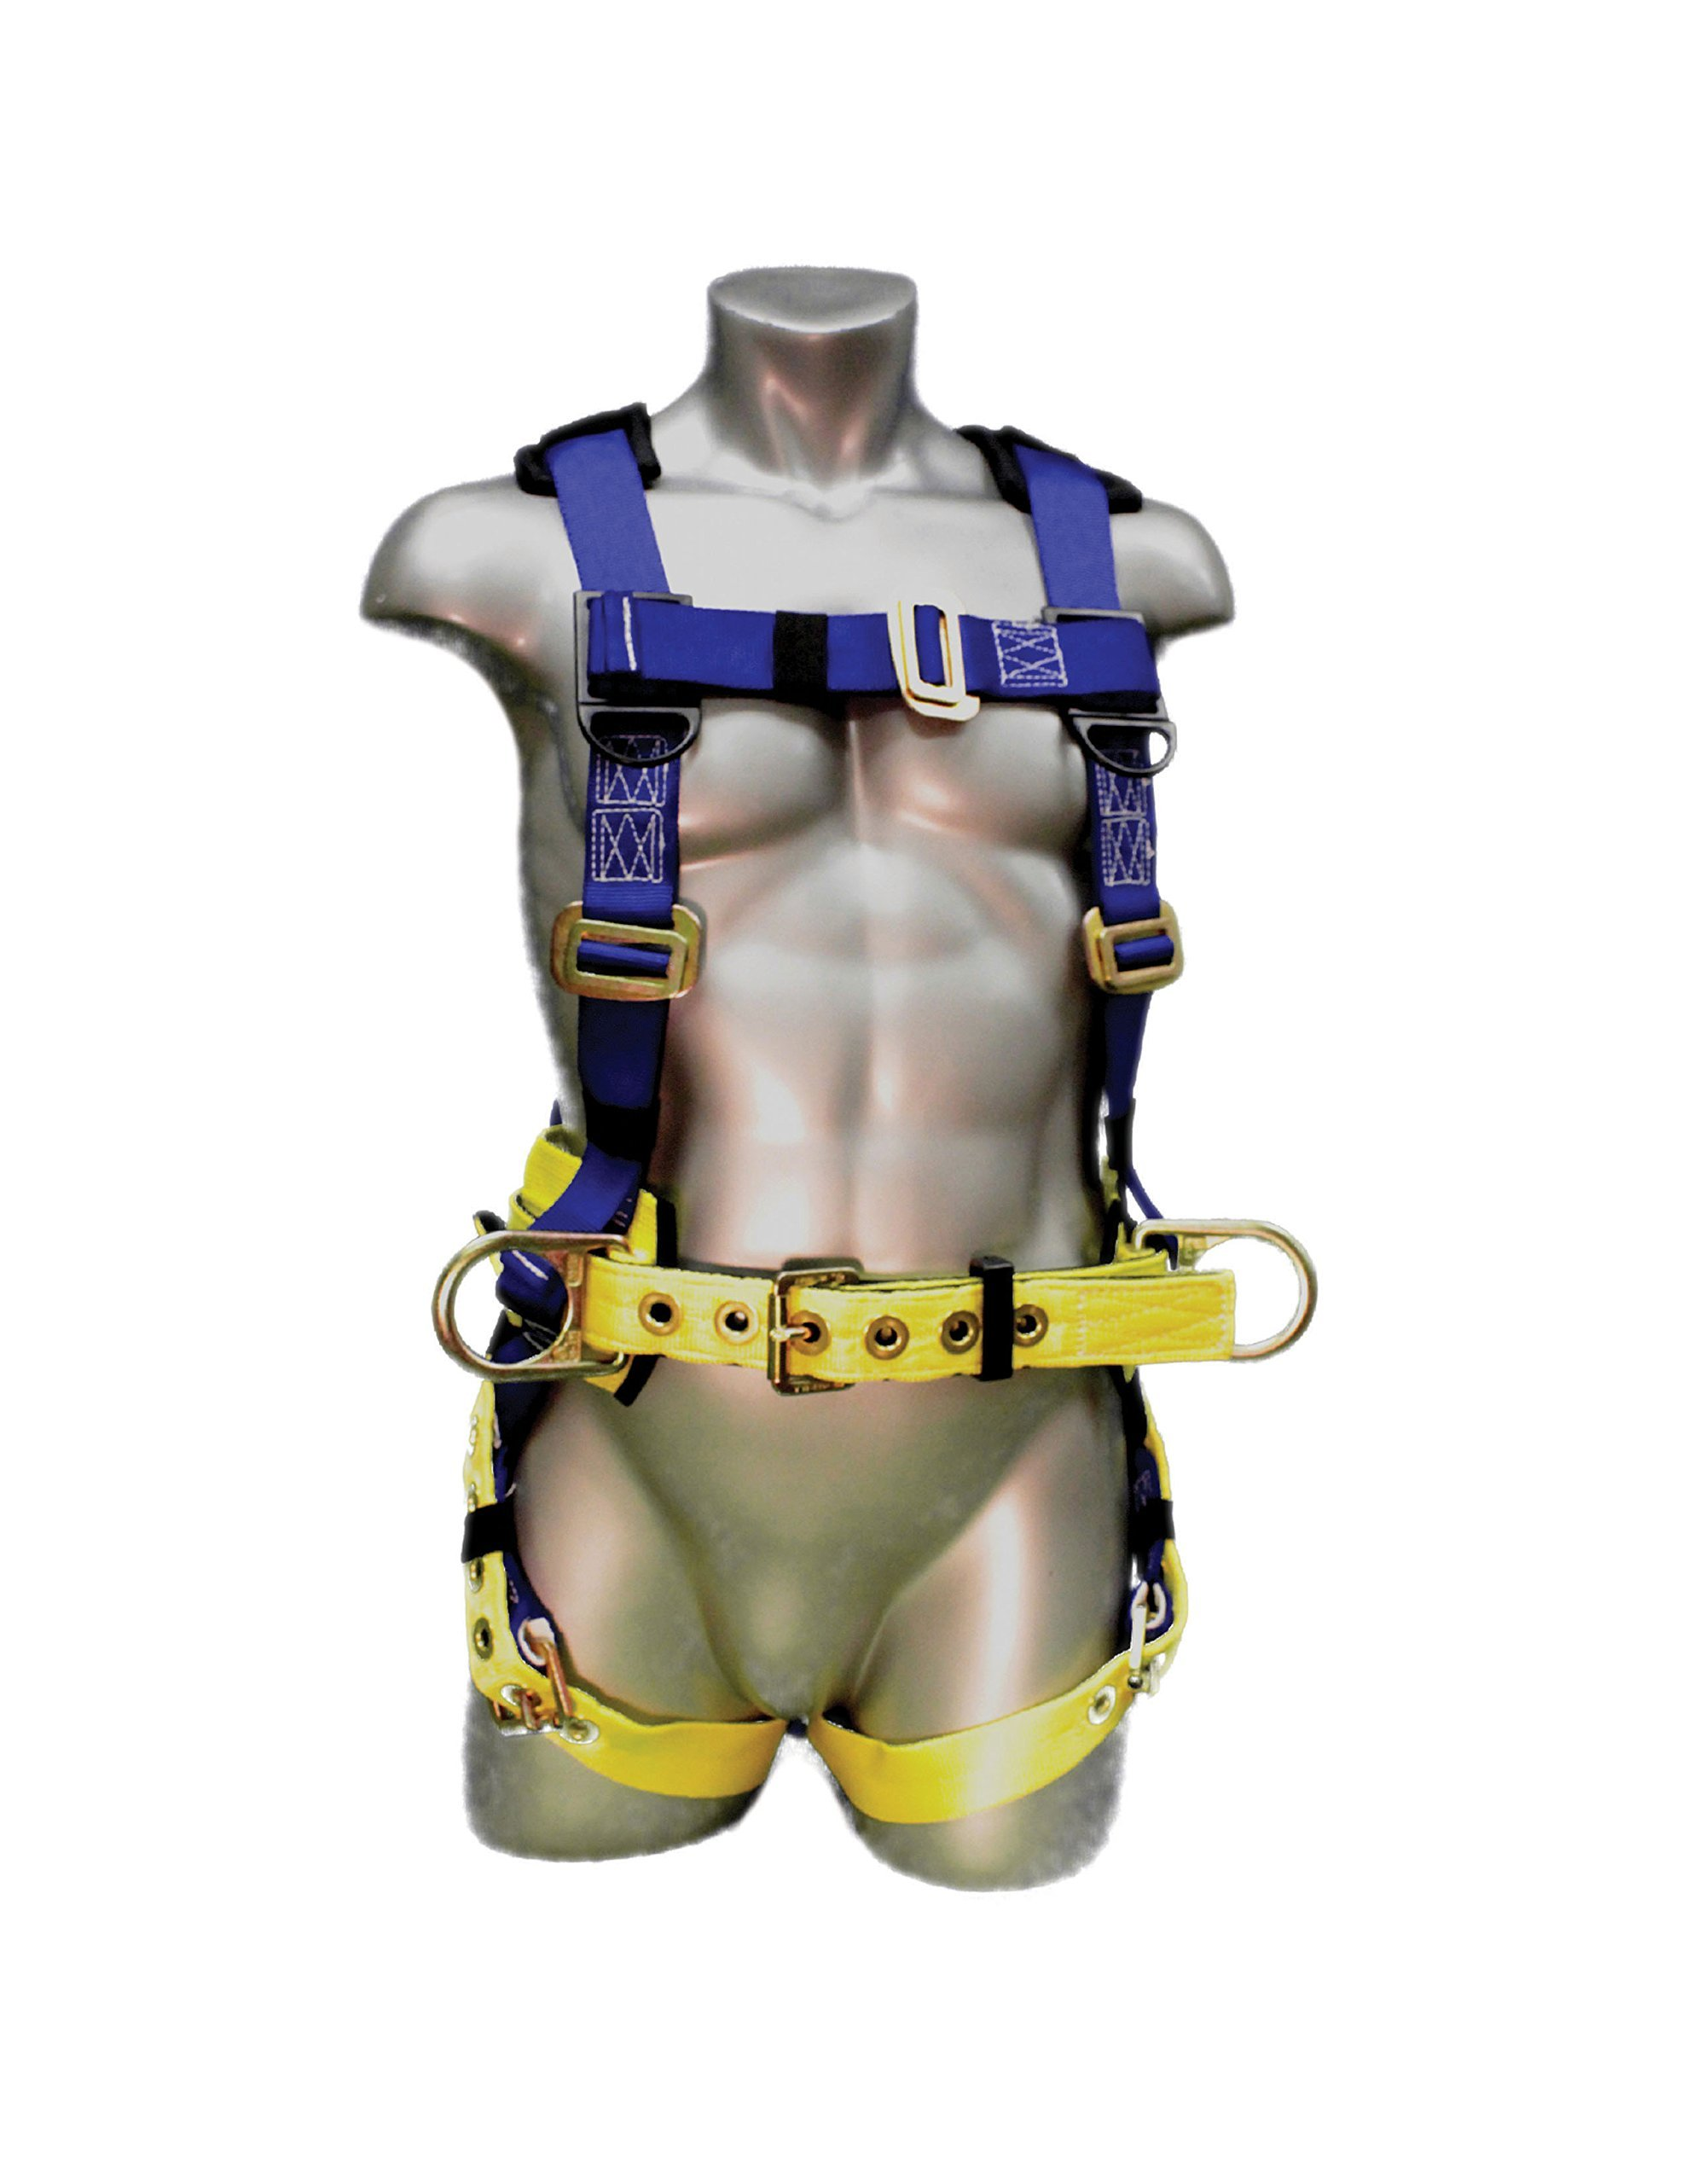 Elk River WorkMaster Harness with Tongue Buckles, 3 D-Rings, Polyester/Nylon, Small